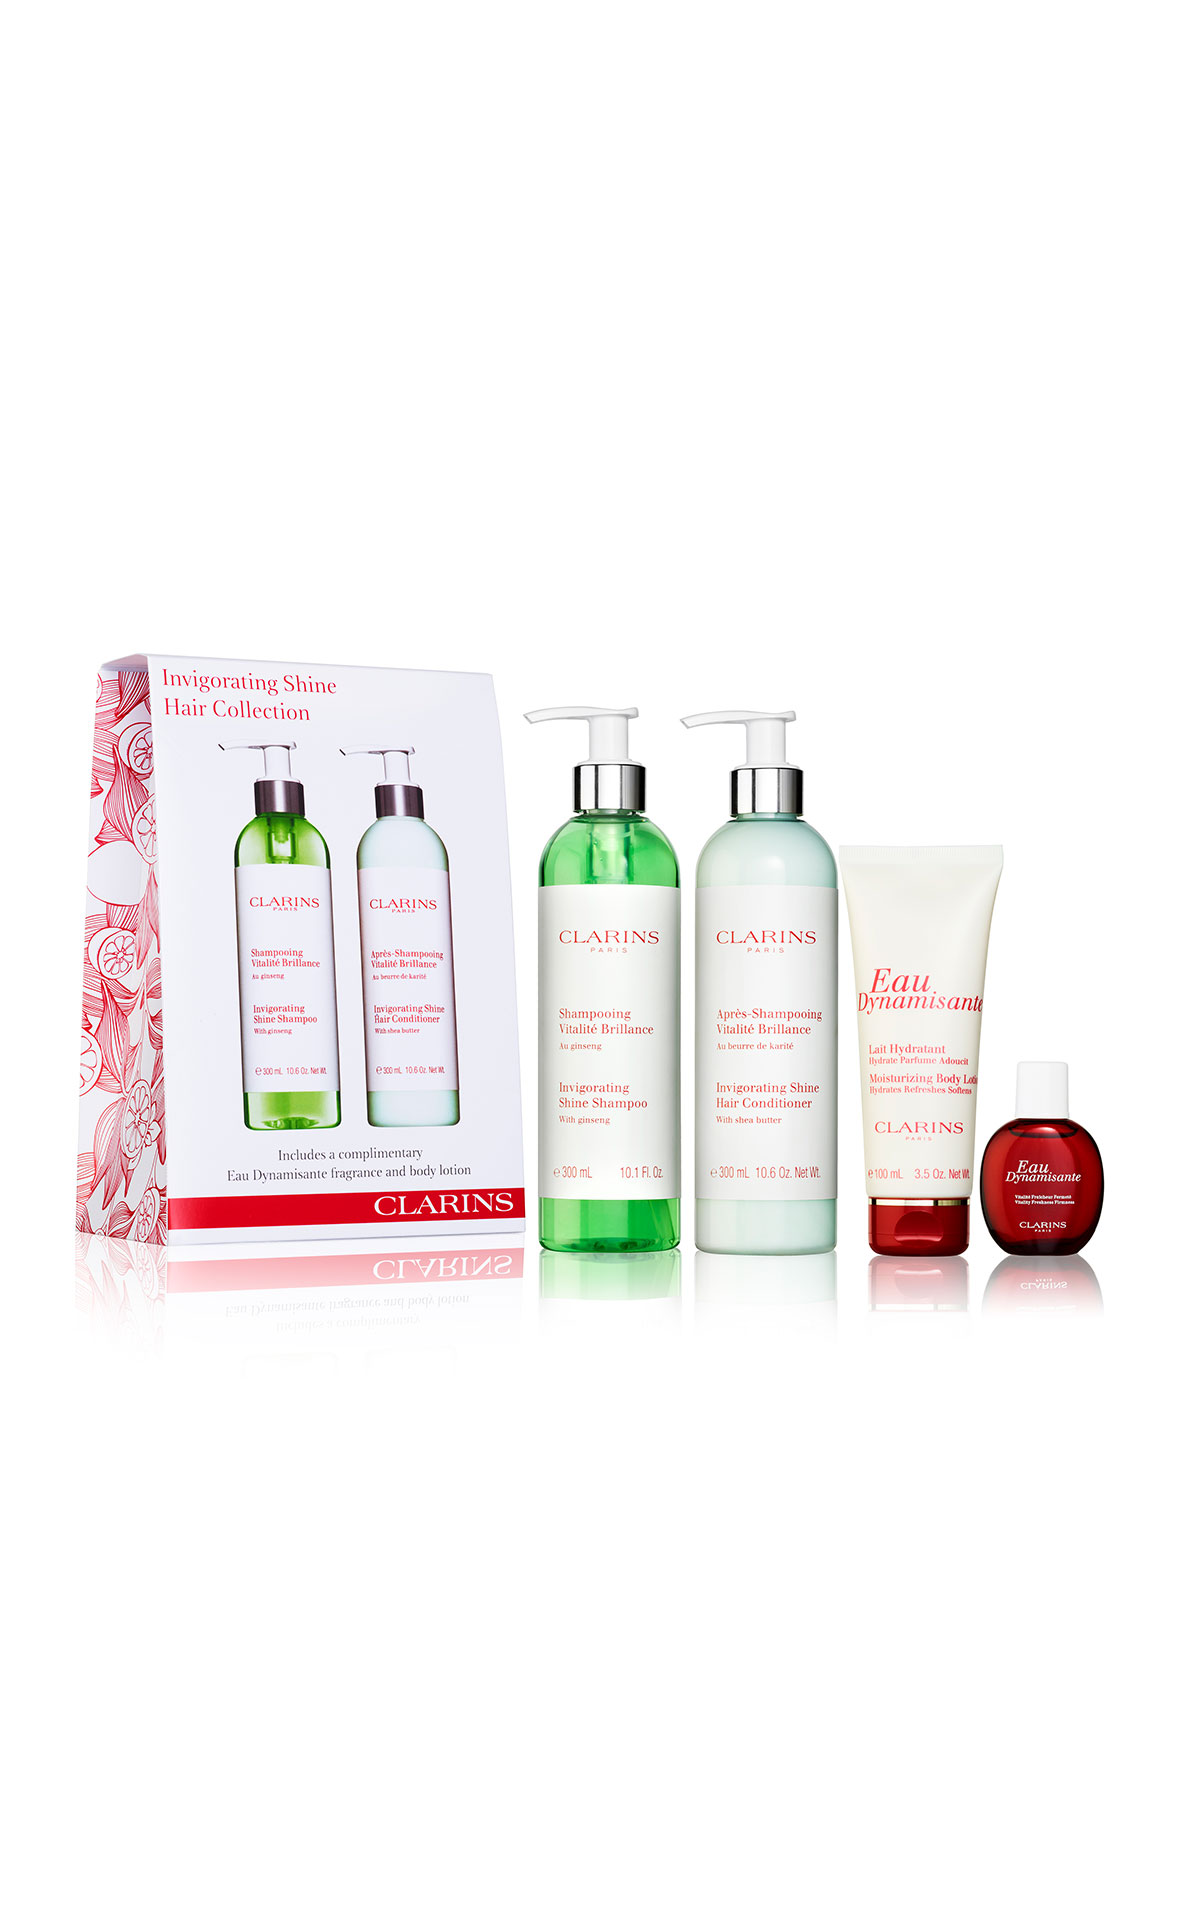 Clarins Invigorating shine hair collection from Bicester Village